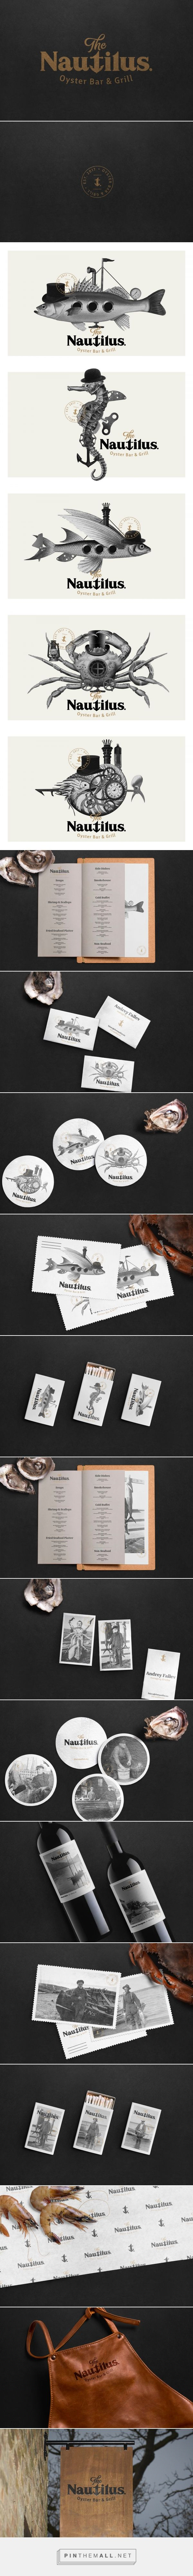 The Nautilus Oyster Bar & Grill Restaurant Branding and Menu Design by Stepan Solodkov | Fivestar Branding Agency – Design and Branding Agency & Curated Inspiration Gallery